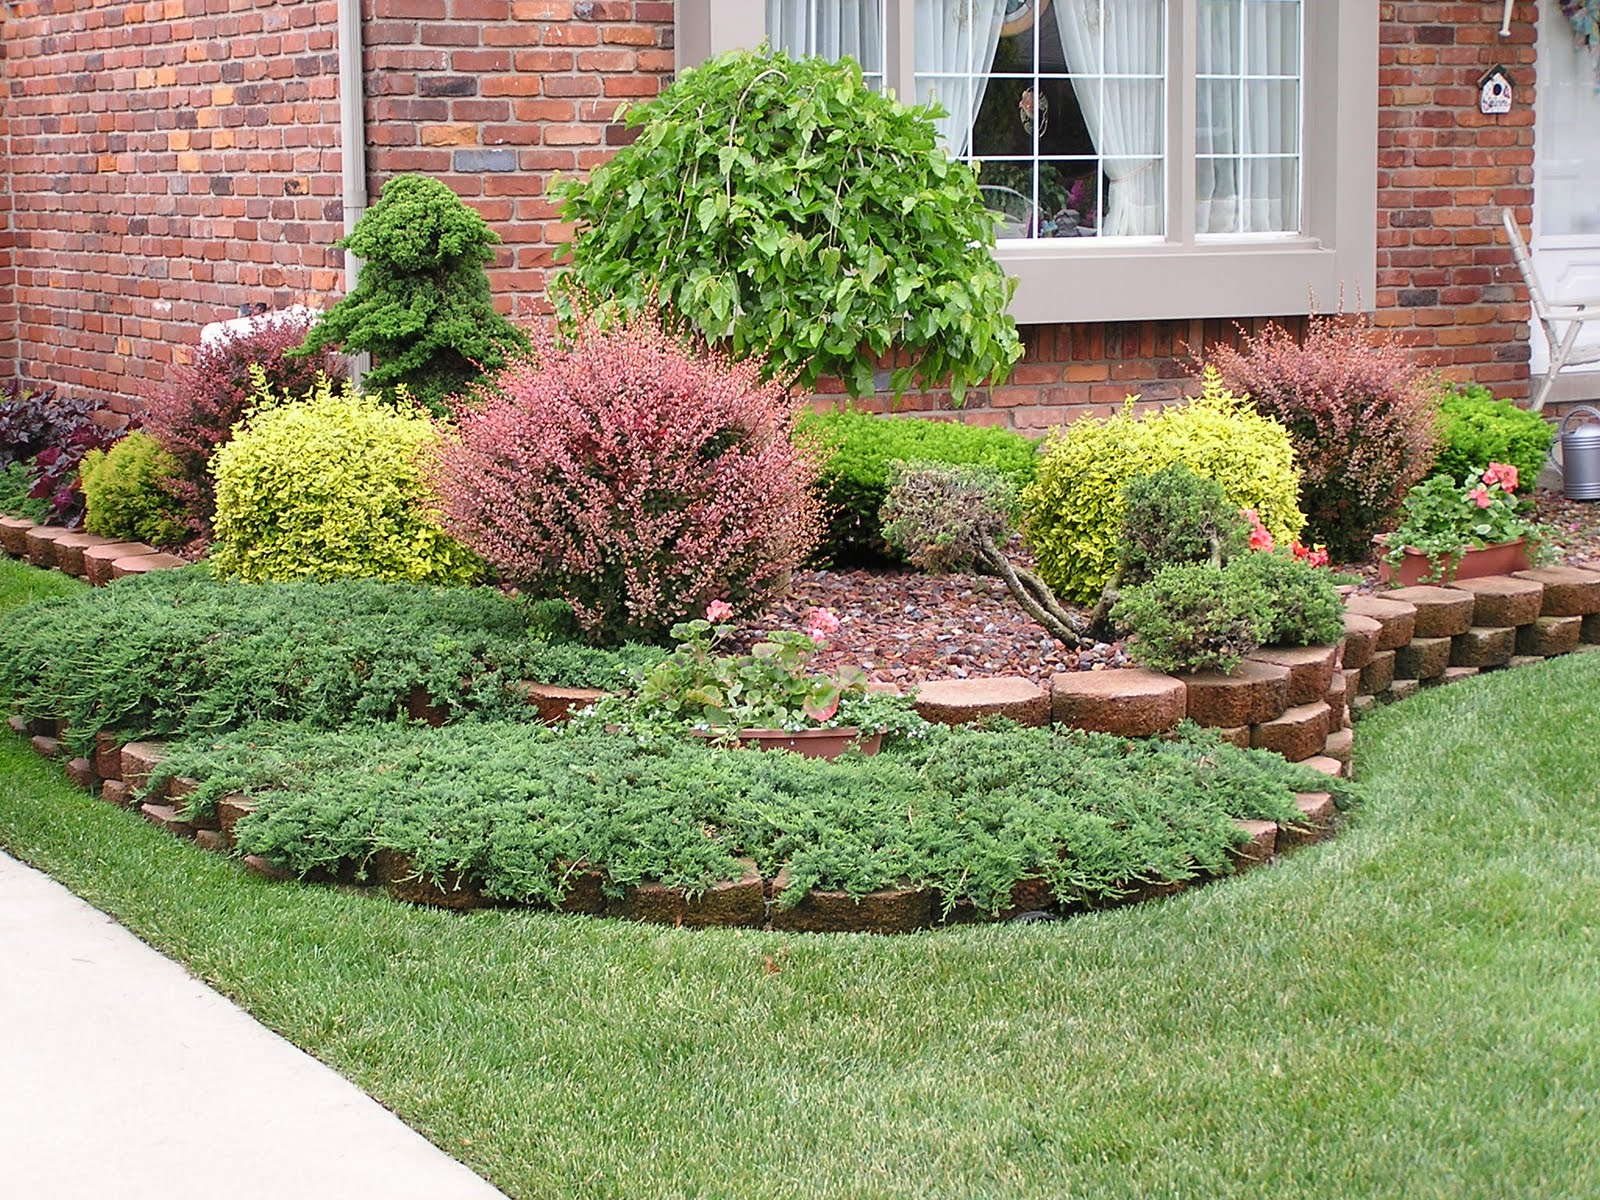 D i y d e s i g n curb appeal part 2 the landscaping for Small garden landscape